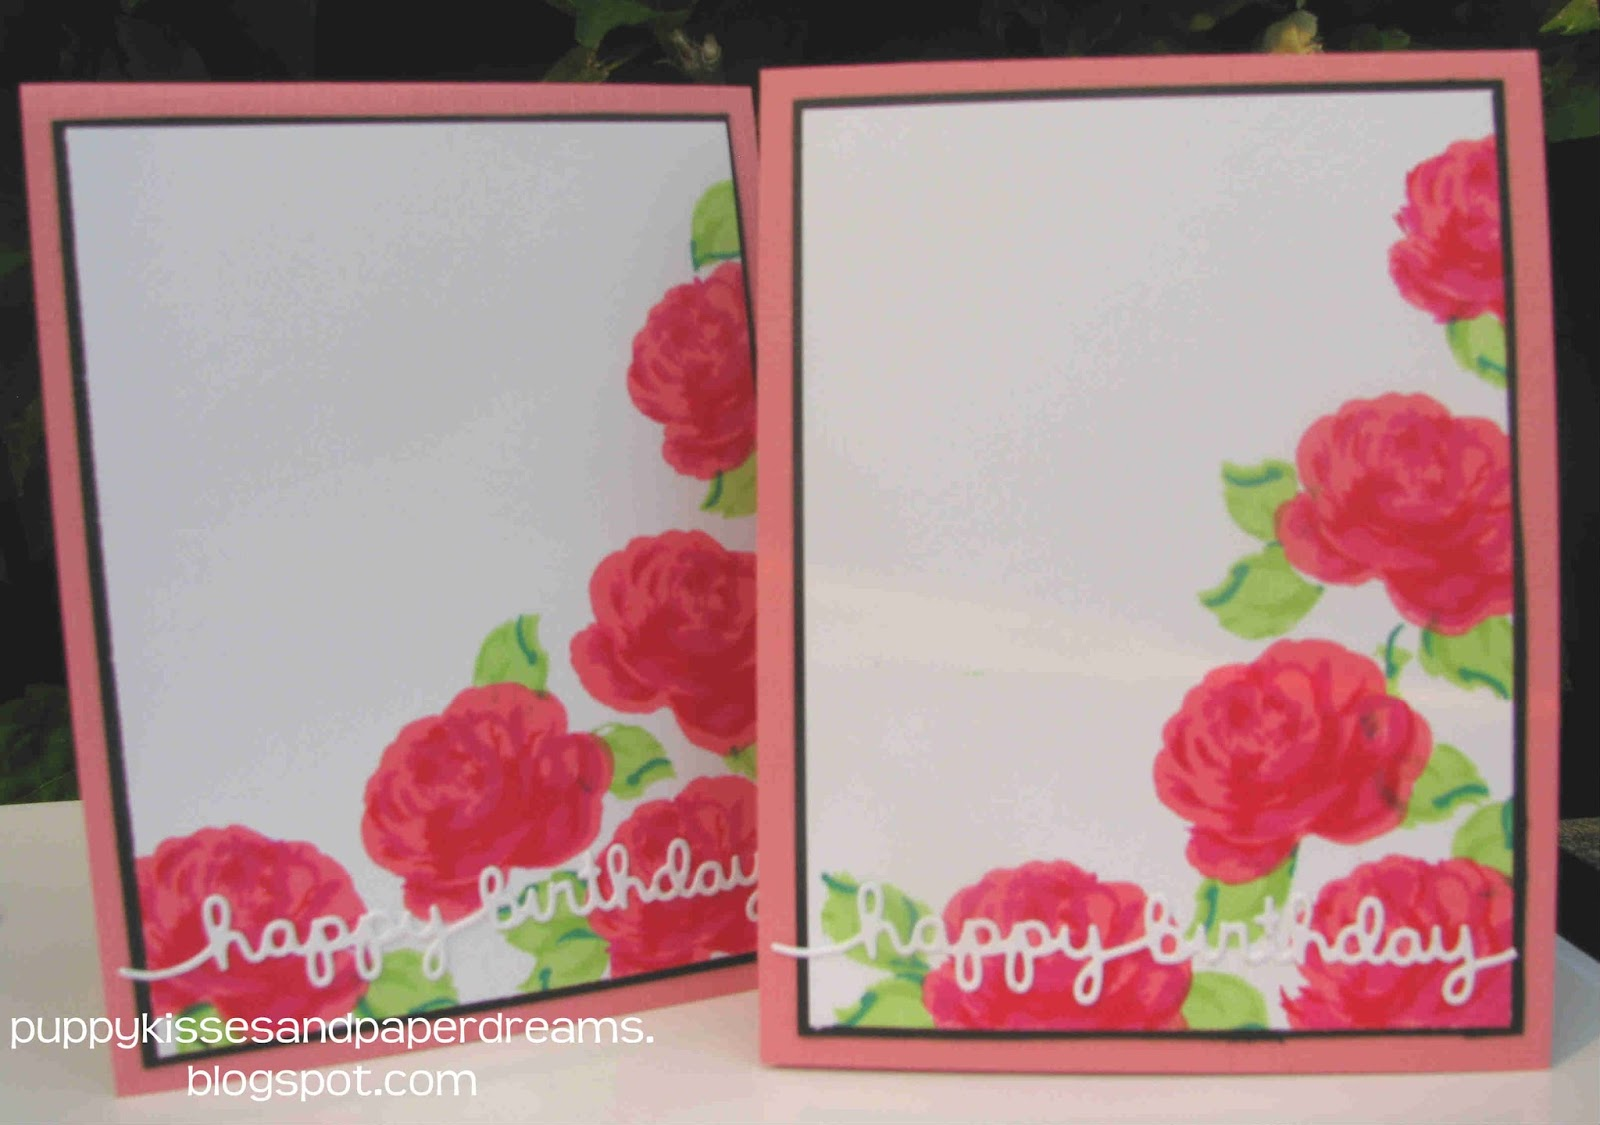 Puppy kisses and paper dreams birthday flower cards 08292015 i dont often make duplicates of cards but i wanted to make several of these cards so i had some birthday cards for my peeps lets say hello shall we izmirmasajfo